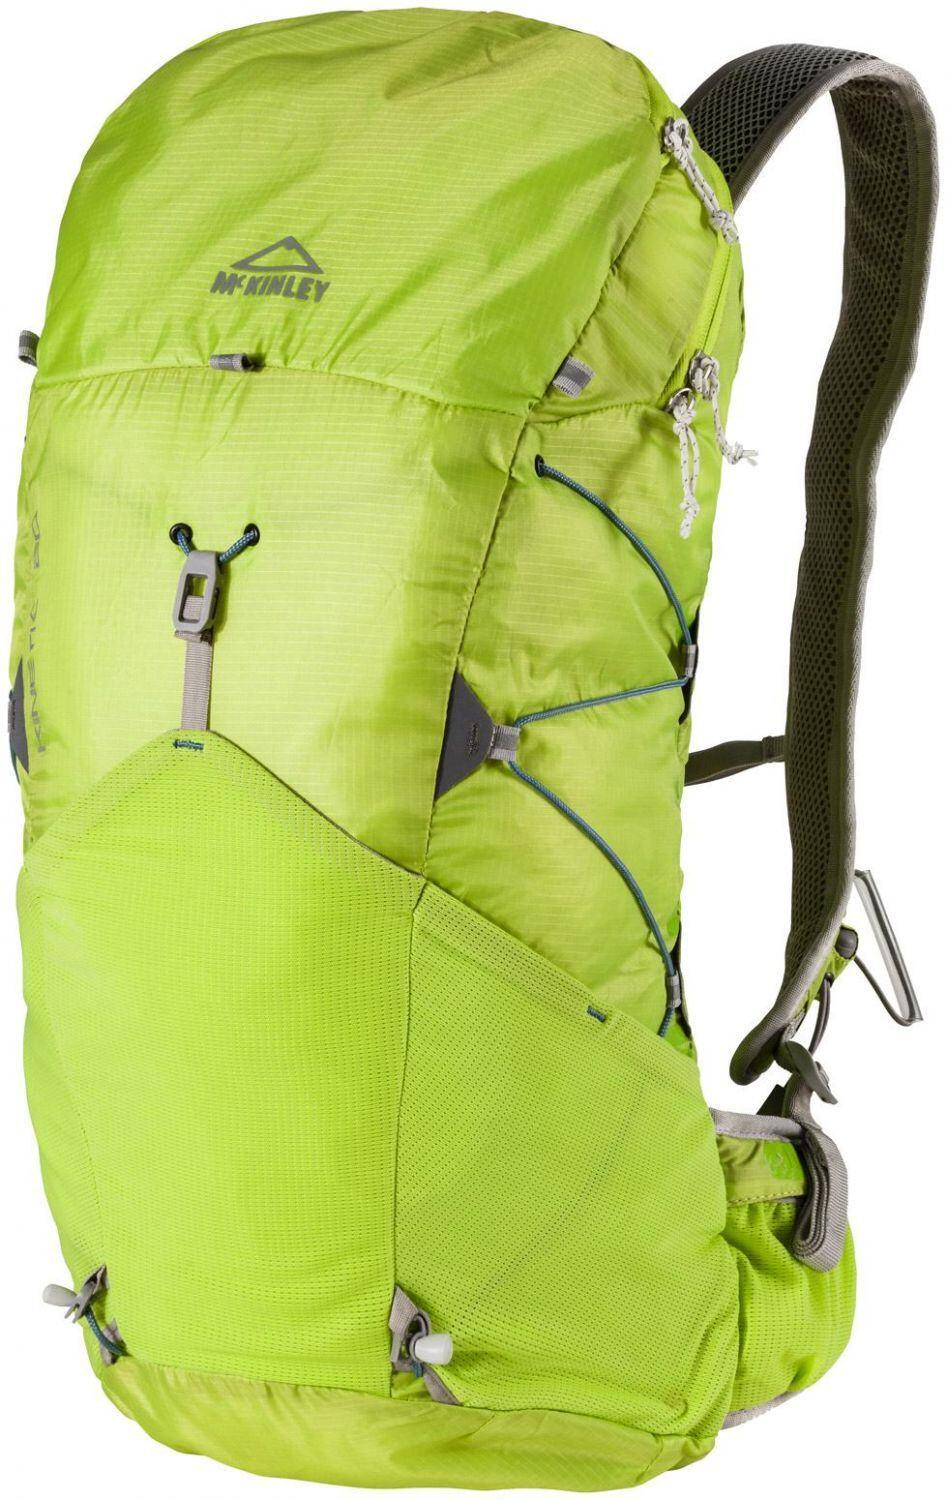 mckinley-kinetic-tagesrucksack-farbe-904-green-lime-blue-